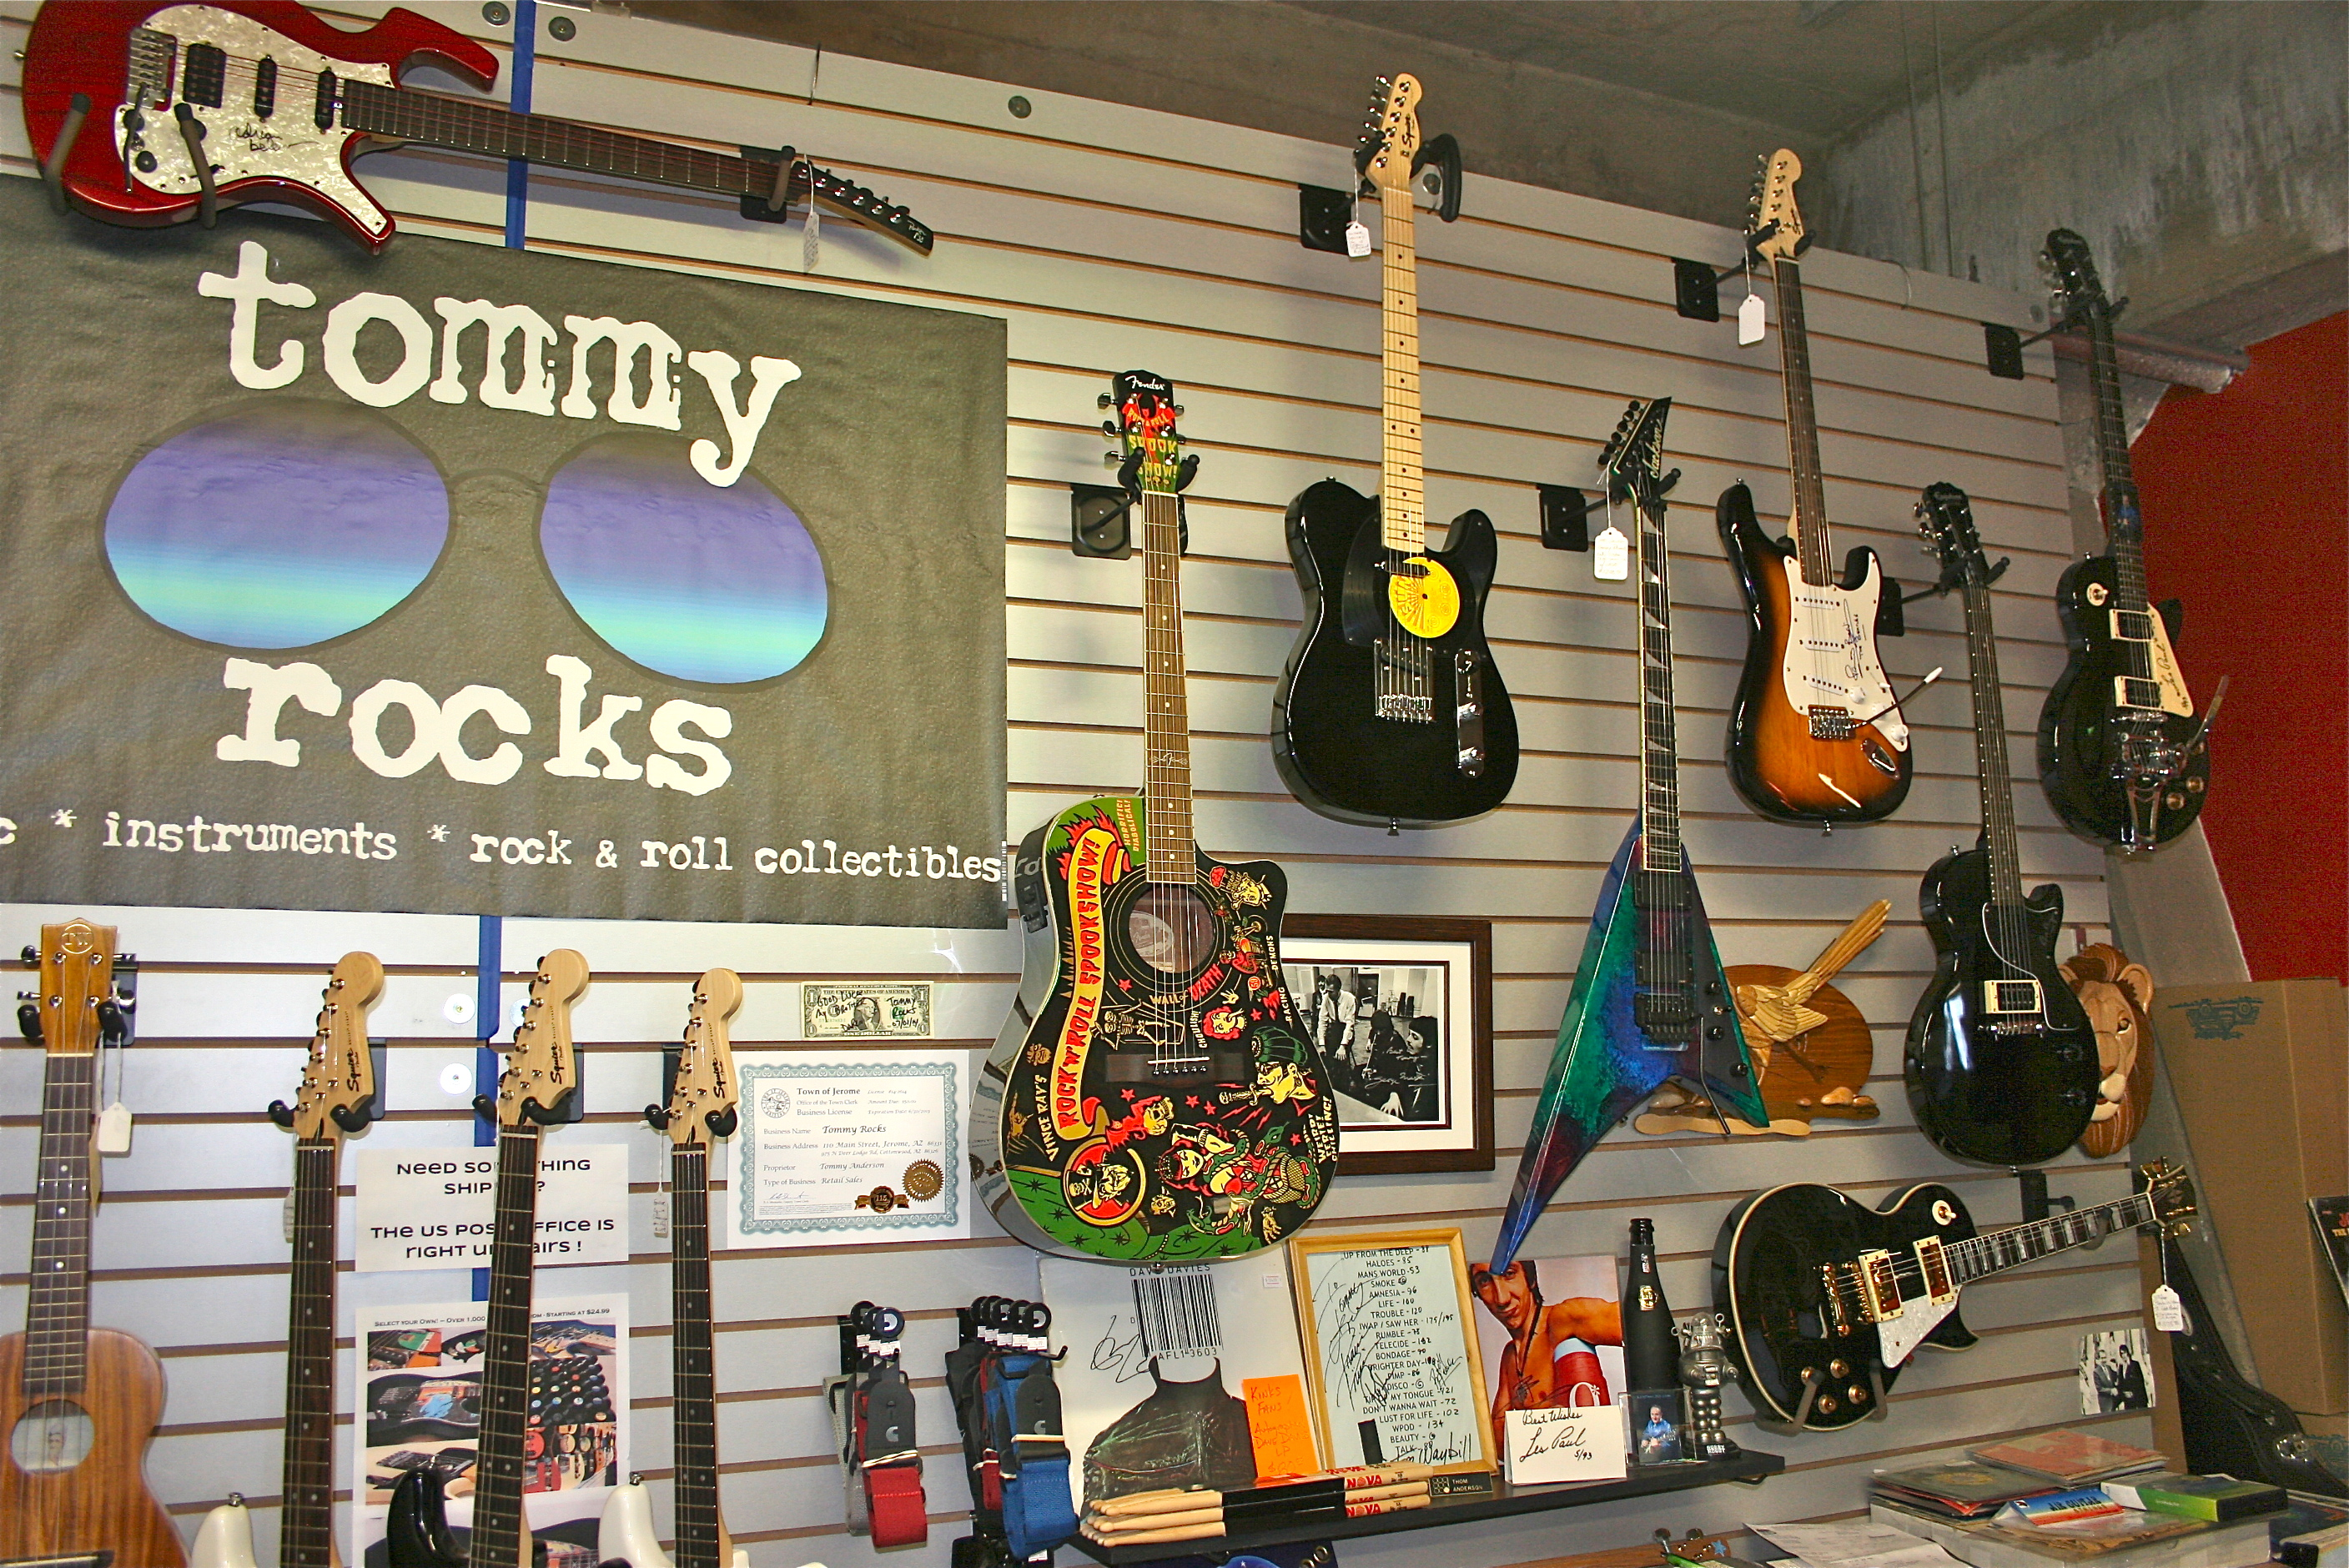 Tommy_Rocks_Jerome_Guitars USEME.JPG